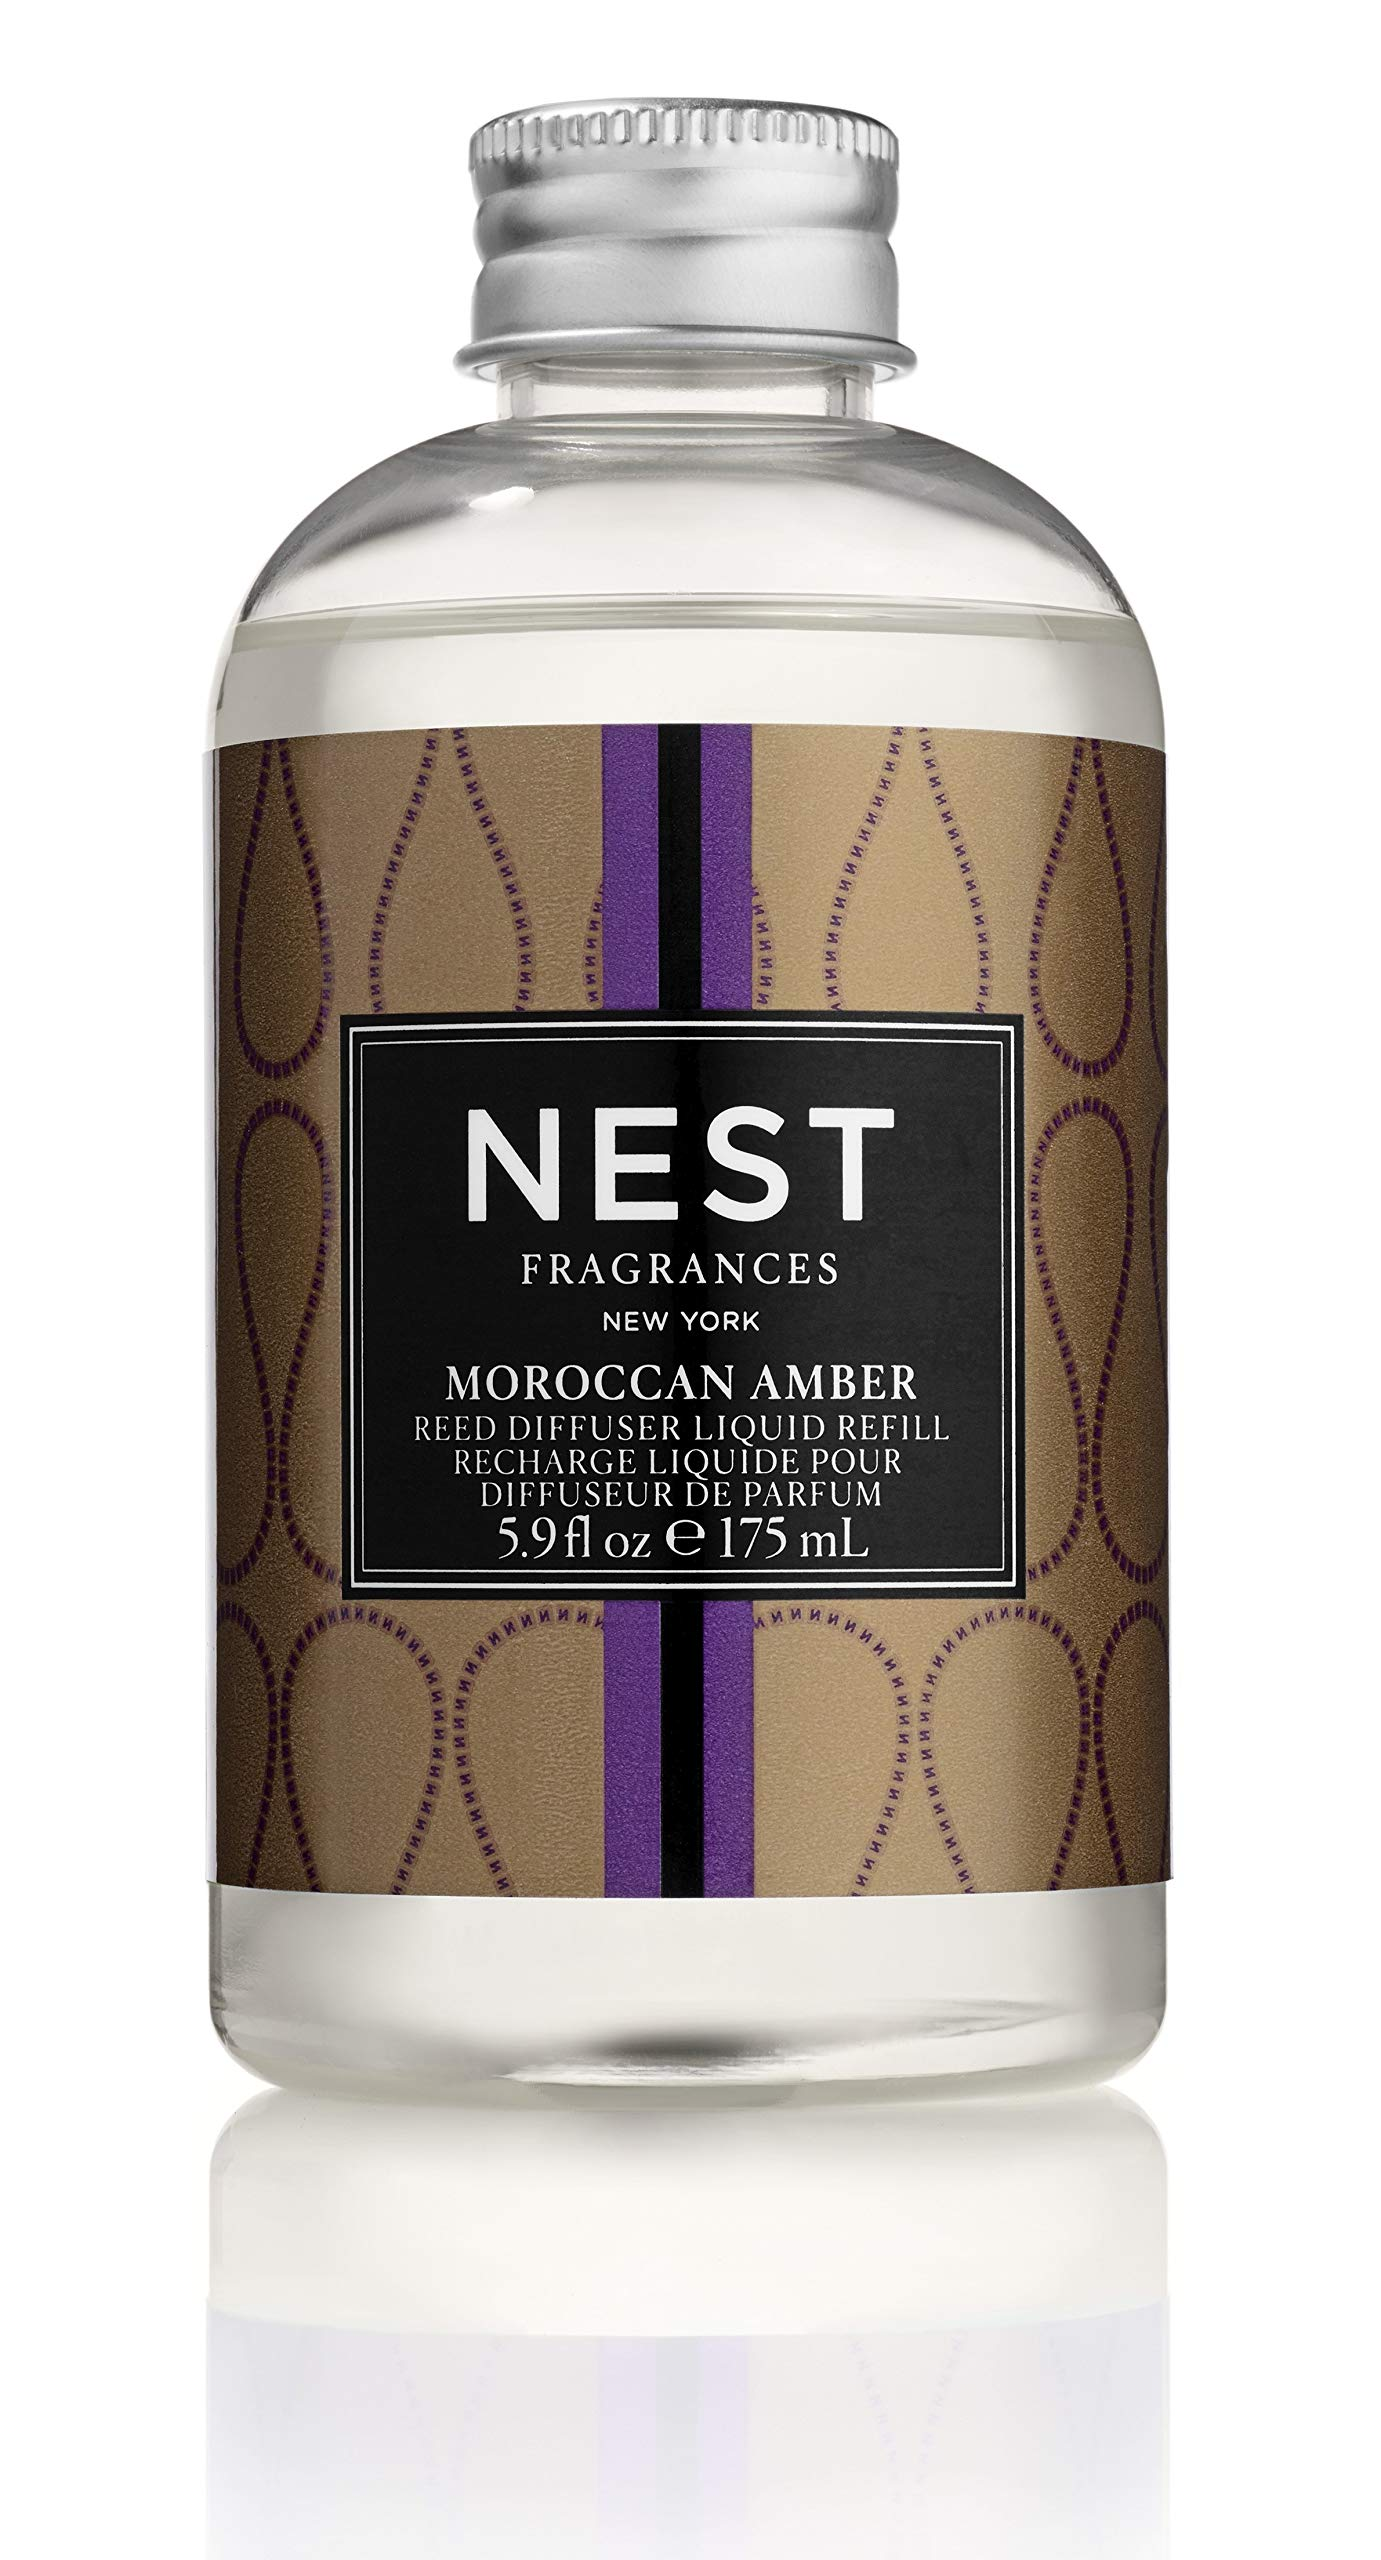 NEST Fragrances Moroccan Amber Reed Diffuser Liquid Refill by NEST Fragrances